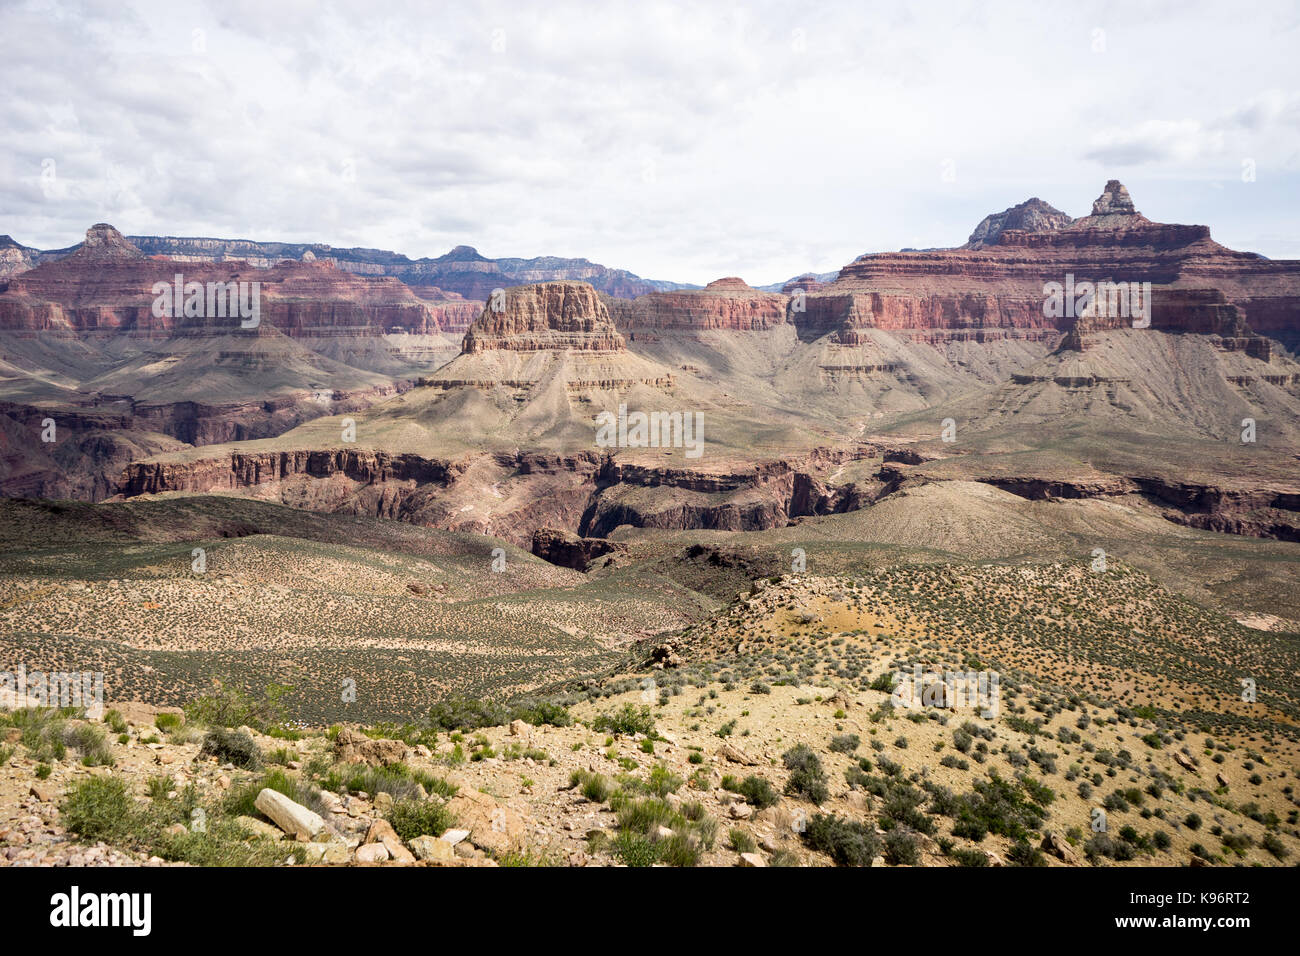 A view into The Grand Canyon along South Kaibab Trail. Stock Photo